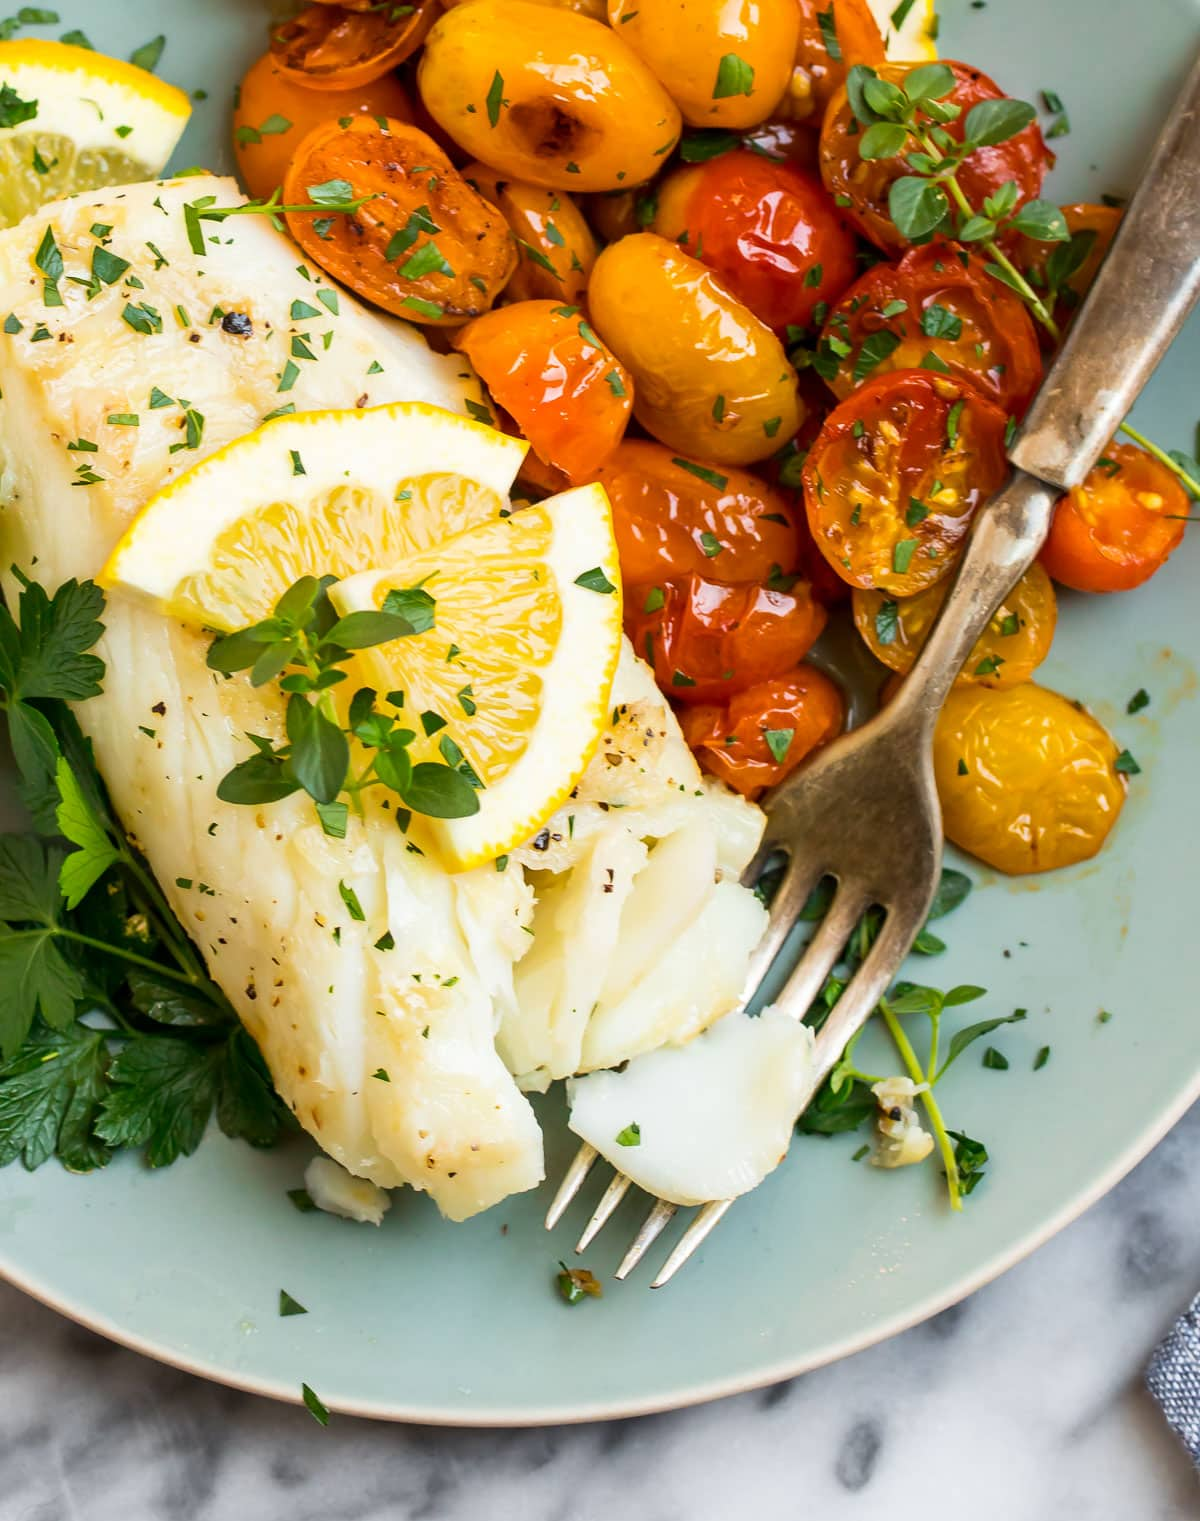 Pan fried cod on a plate with tomatoes and herbs